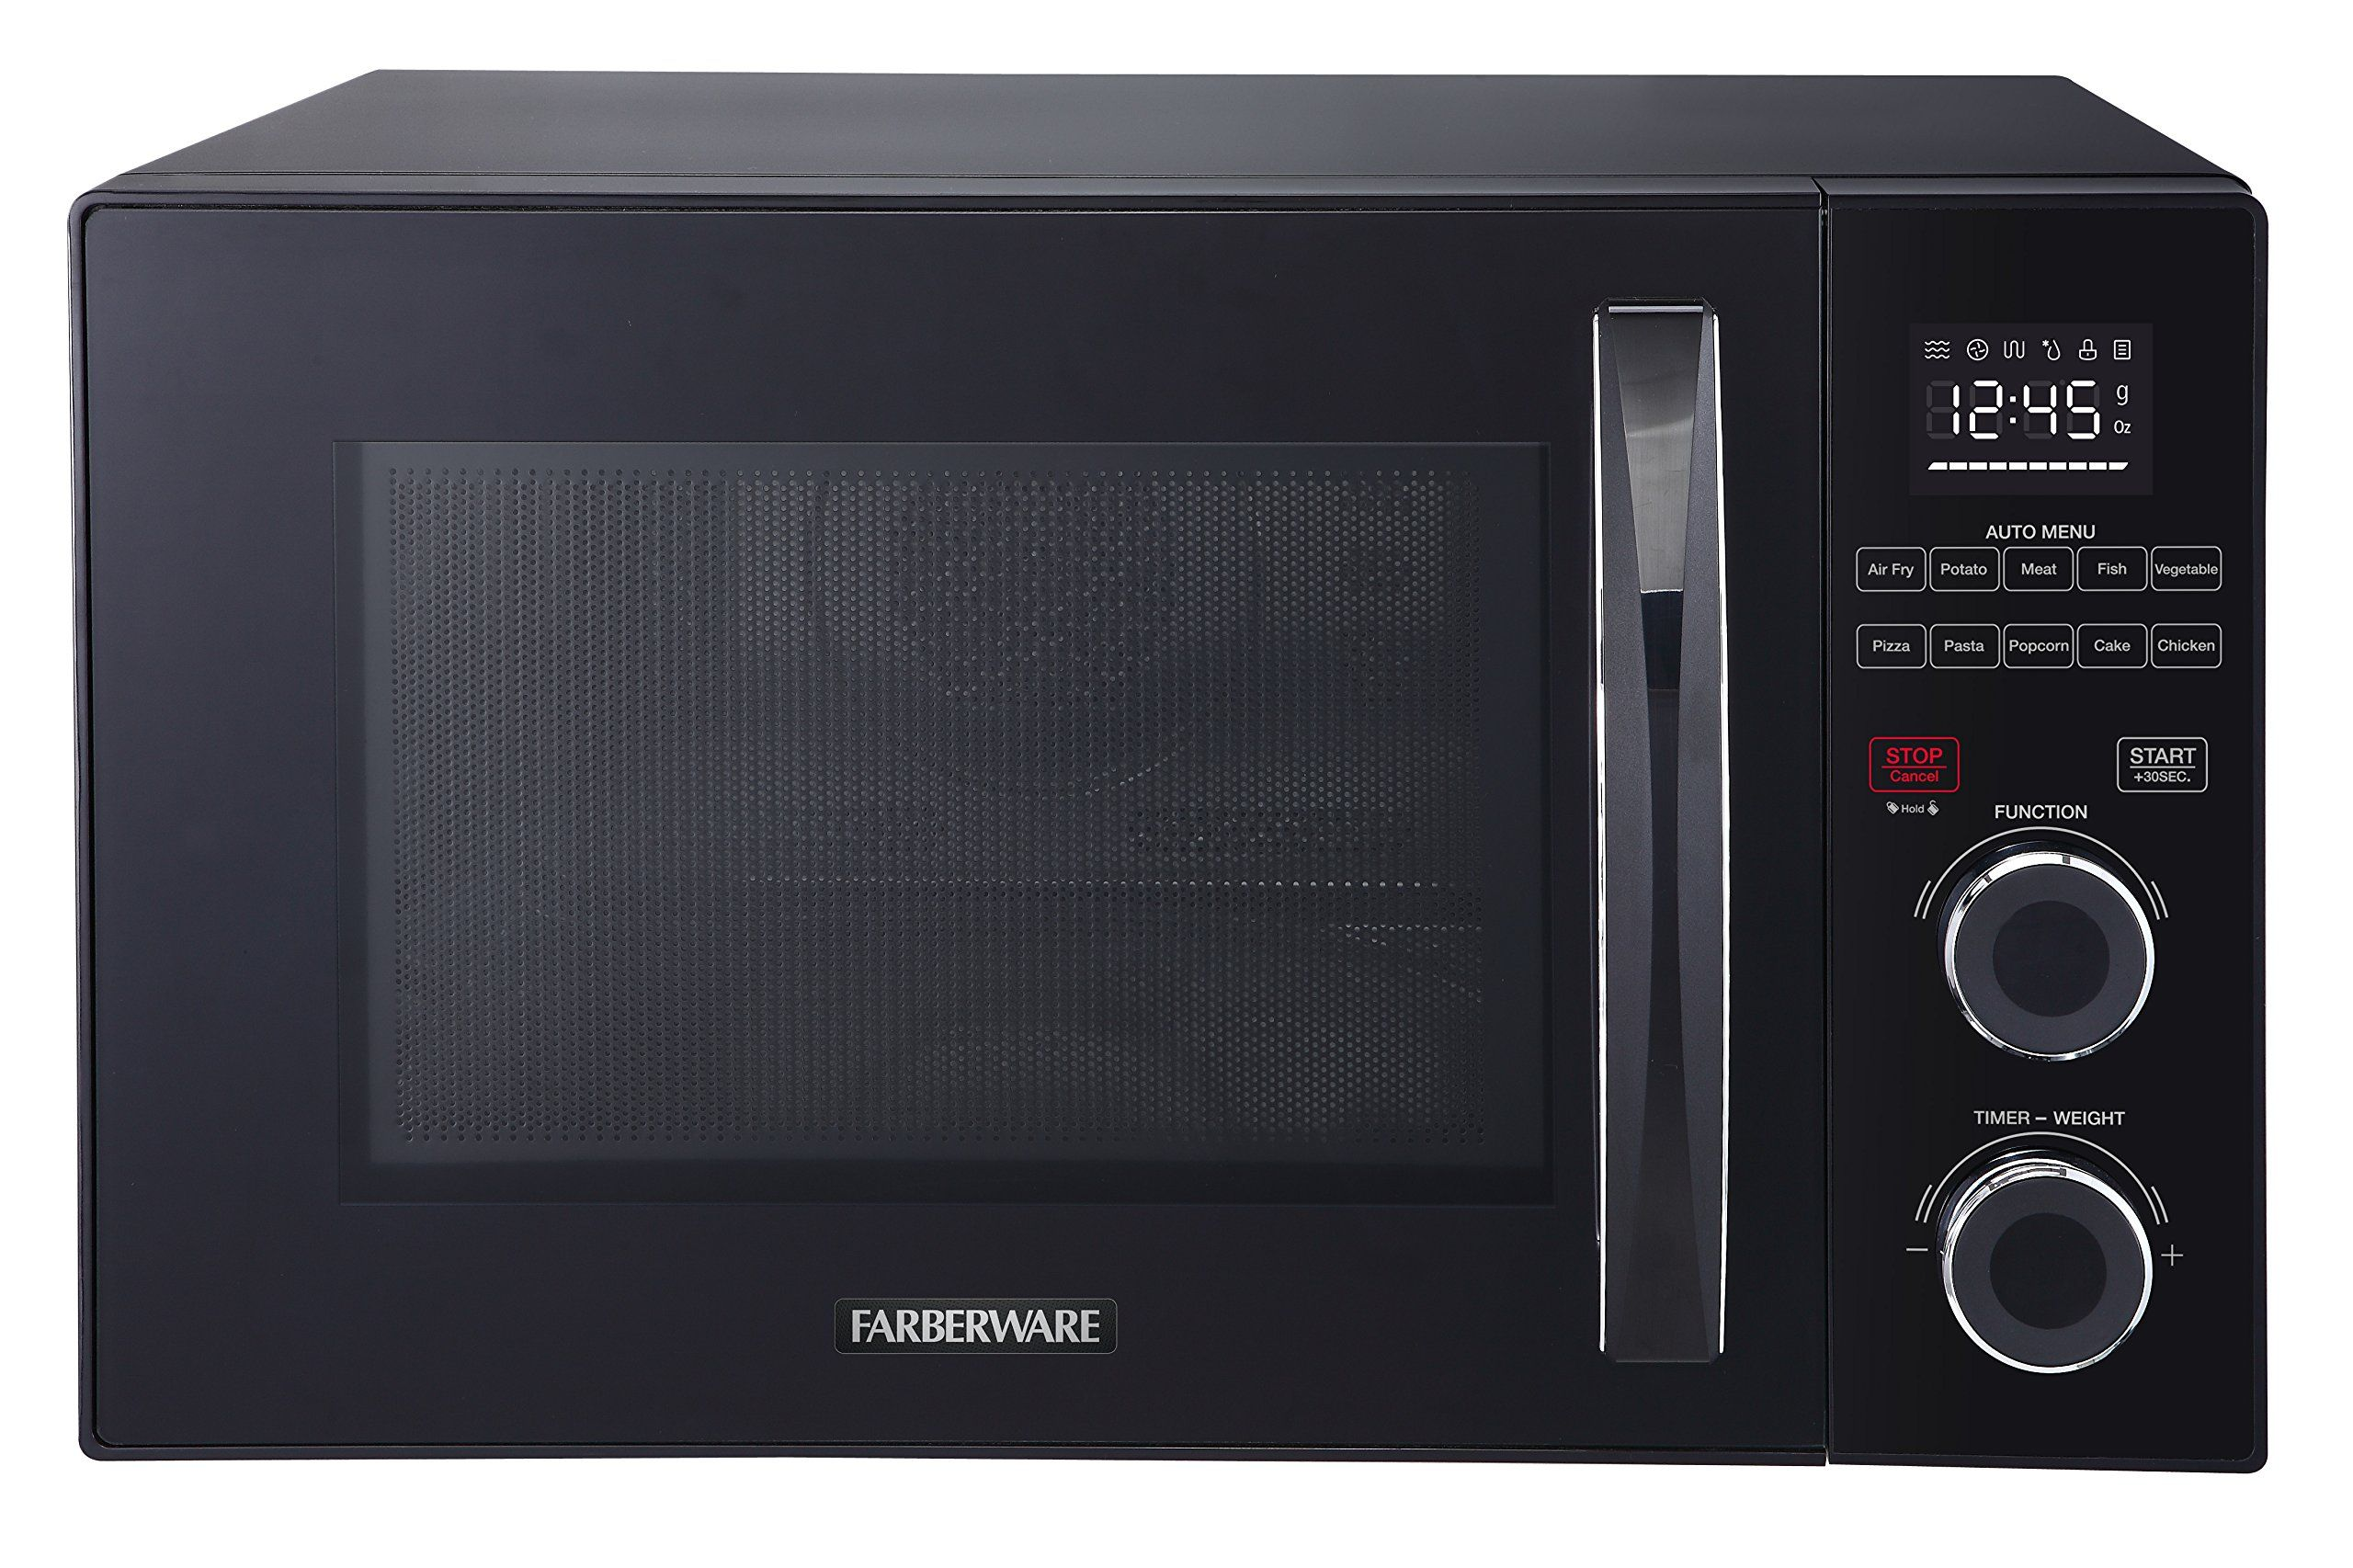 Farberware Gourmet Fmo10ahsbka 1 0 Cubic Foot 1000 Watt Microwave Oven With Healthy Air Fry And Grill Convection Func Home Appliances Farberware Microwave Oven